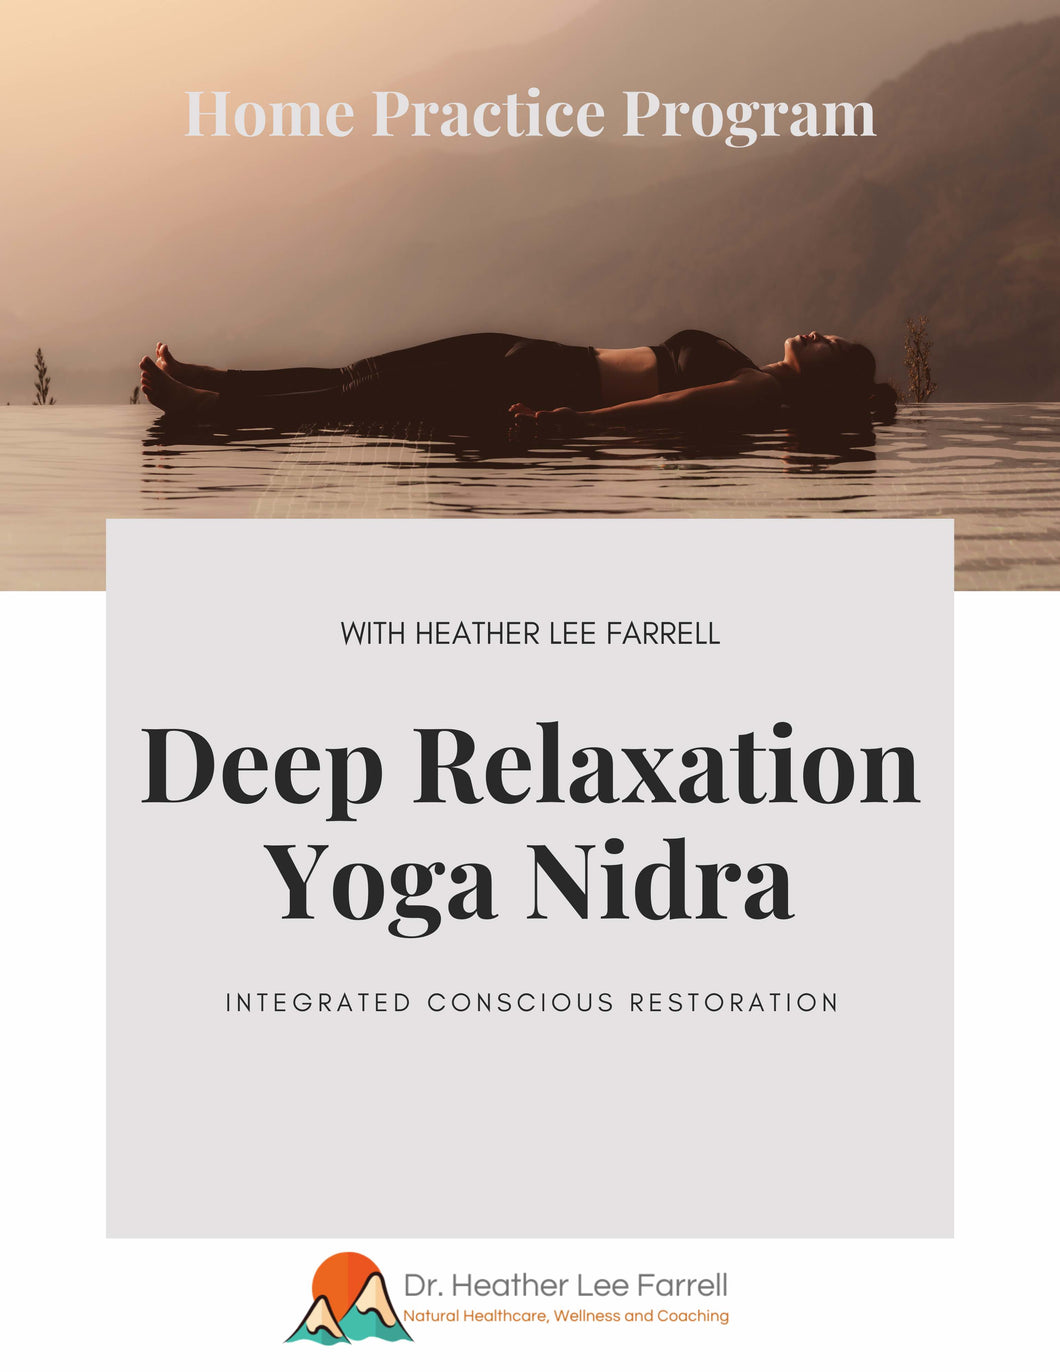 Deep Relaxation Yoga Nidra Immersive Home Practice Program